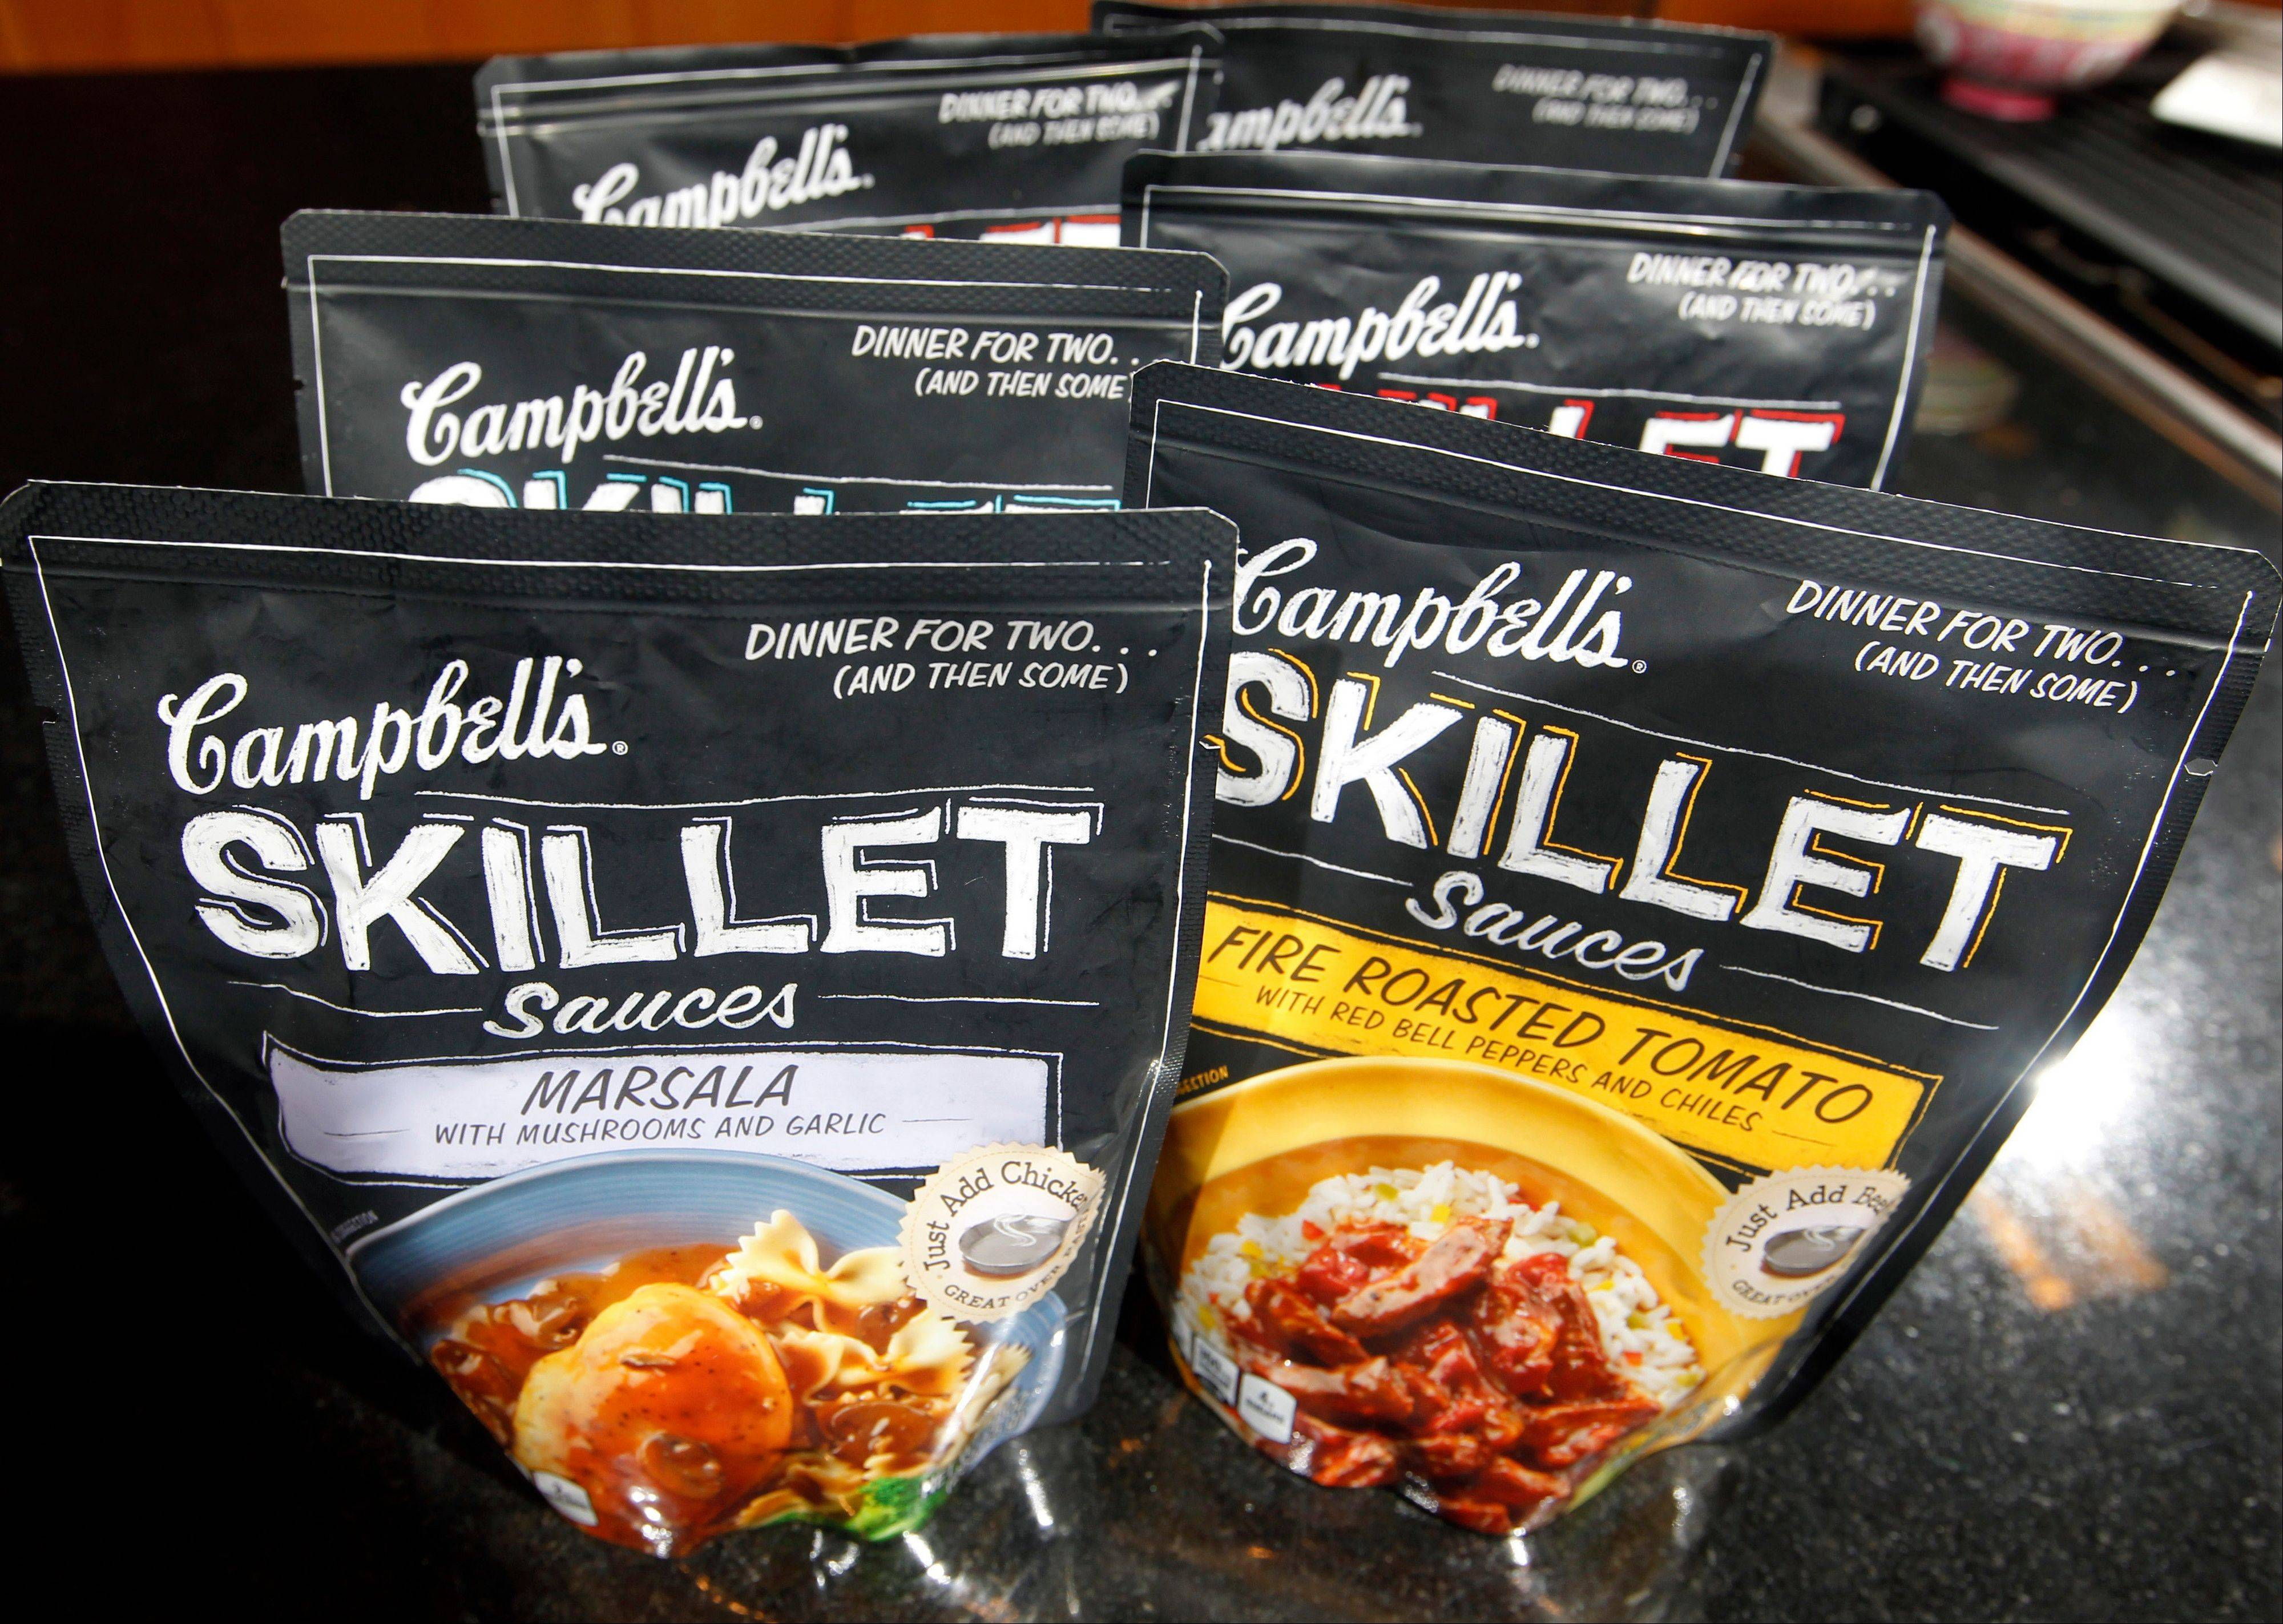 Campbell's new Skillet sauces. As more people try their hand at mimicking sophisticated recipes from cooking shows and blogs, food companies are rolling out meal kits and starters that make amateur chefs feel like Emeril Lagasse or Rachael Ray in the kitchen.